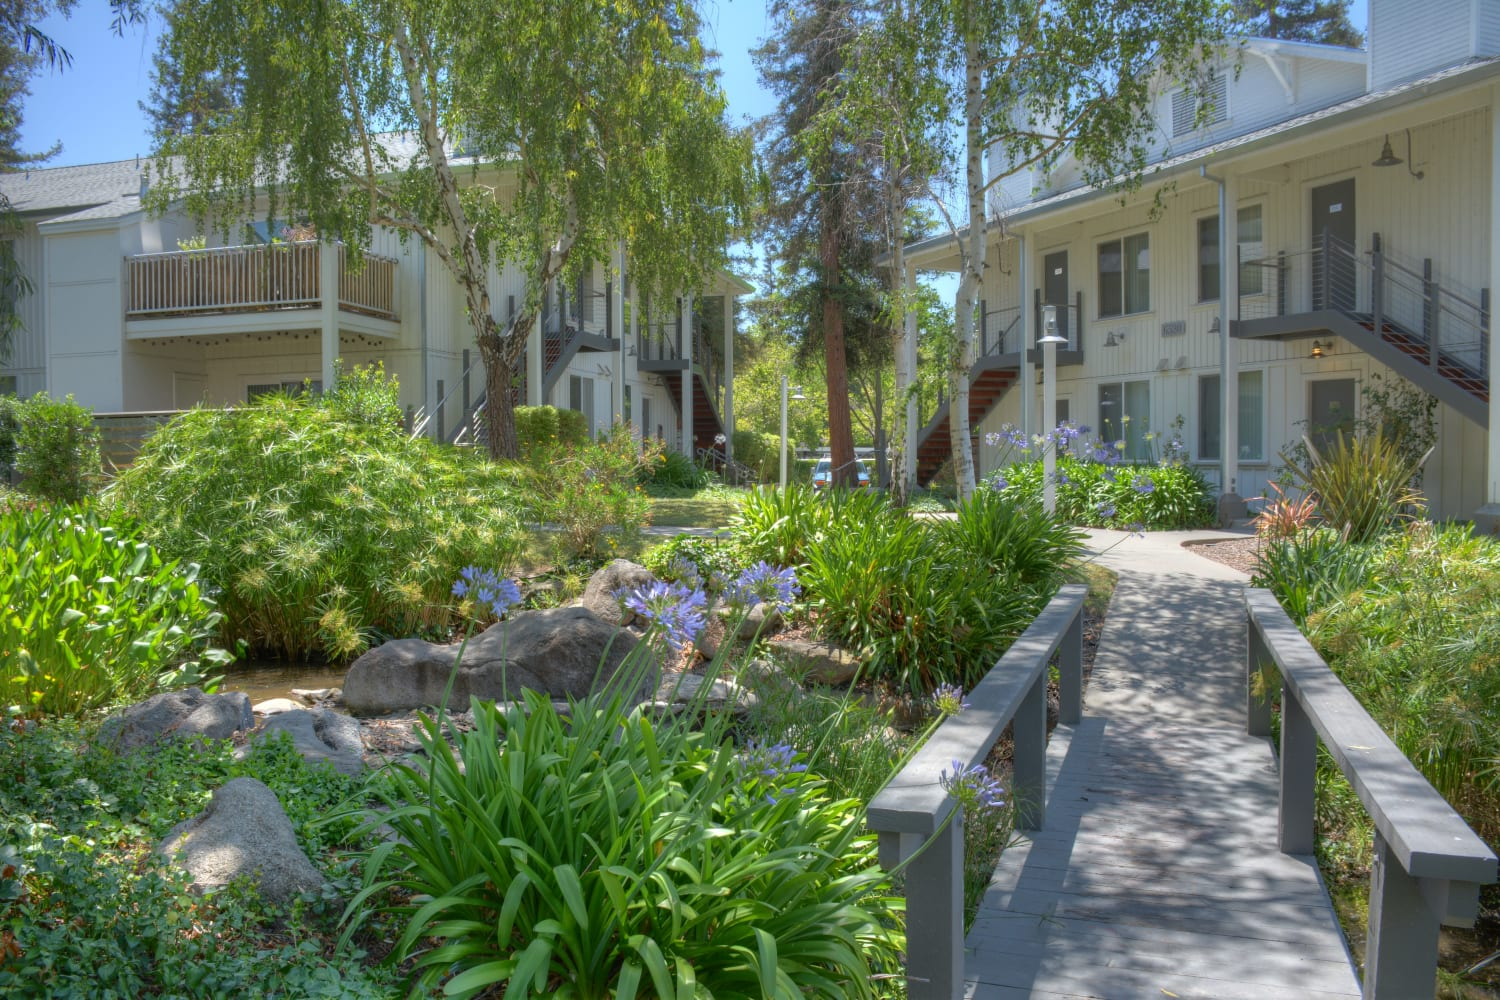 Cotton Wood Apartments in Dublin, California, offer beautiful green surroundings